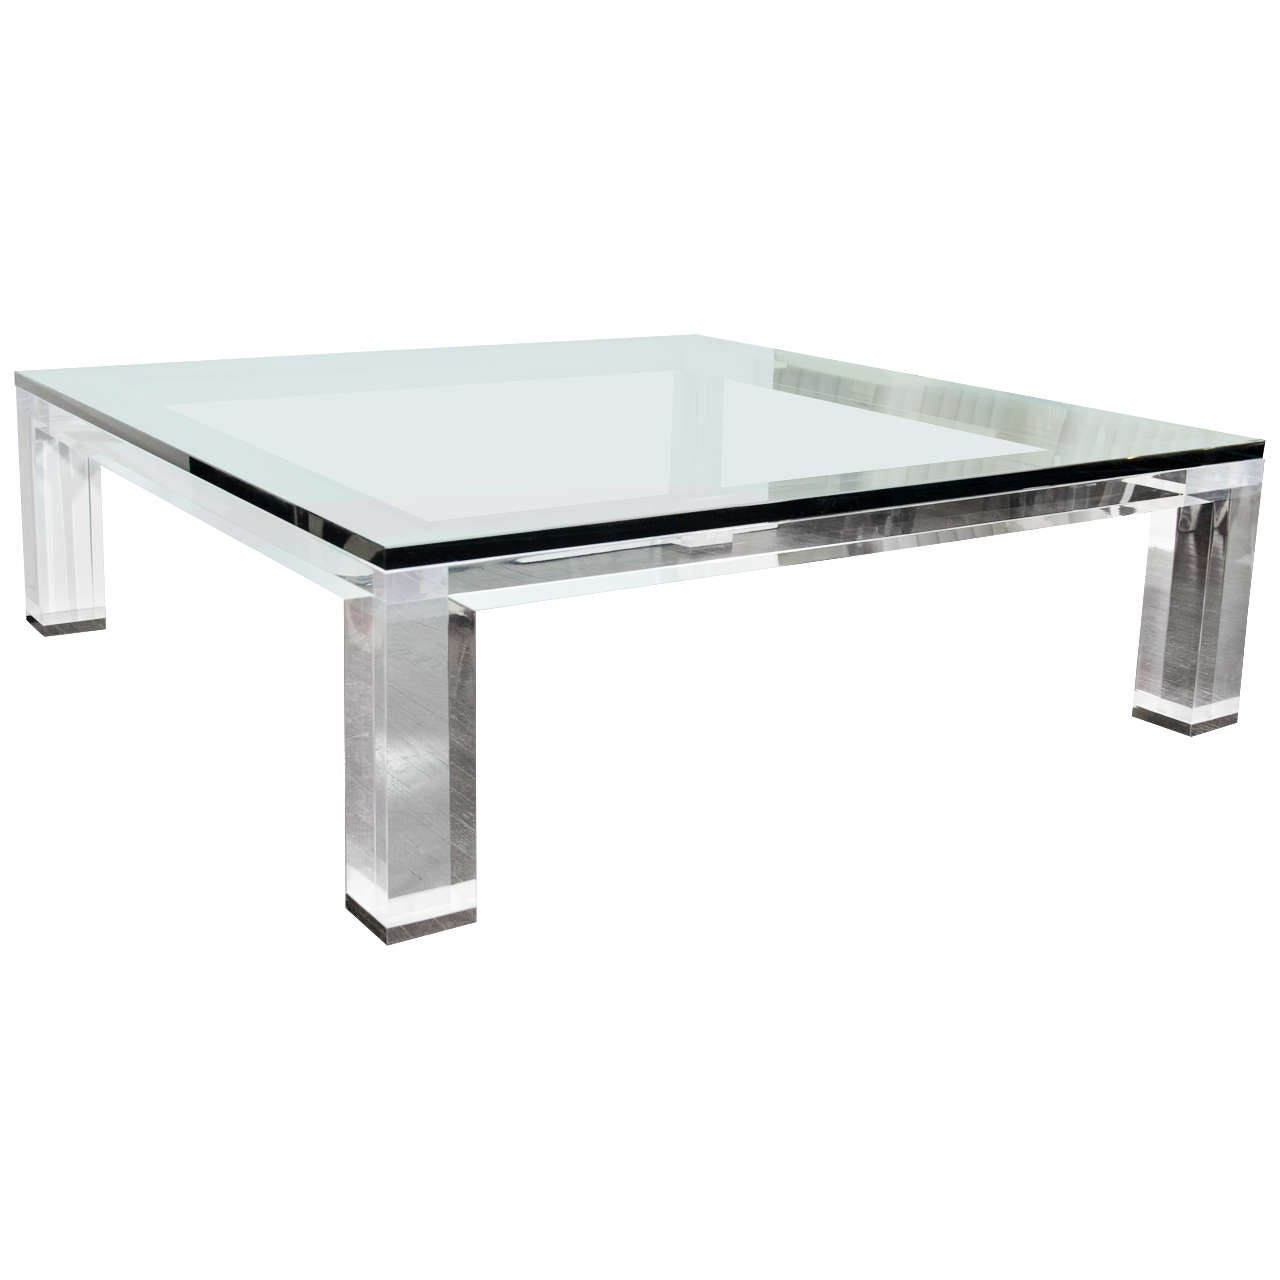 Custom Lucite and Glass Coffee Table